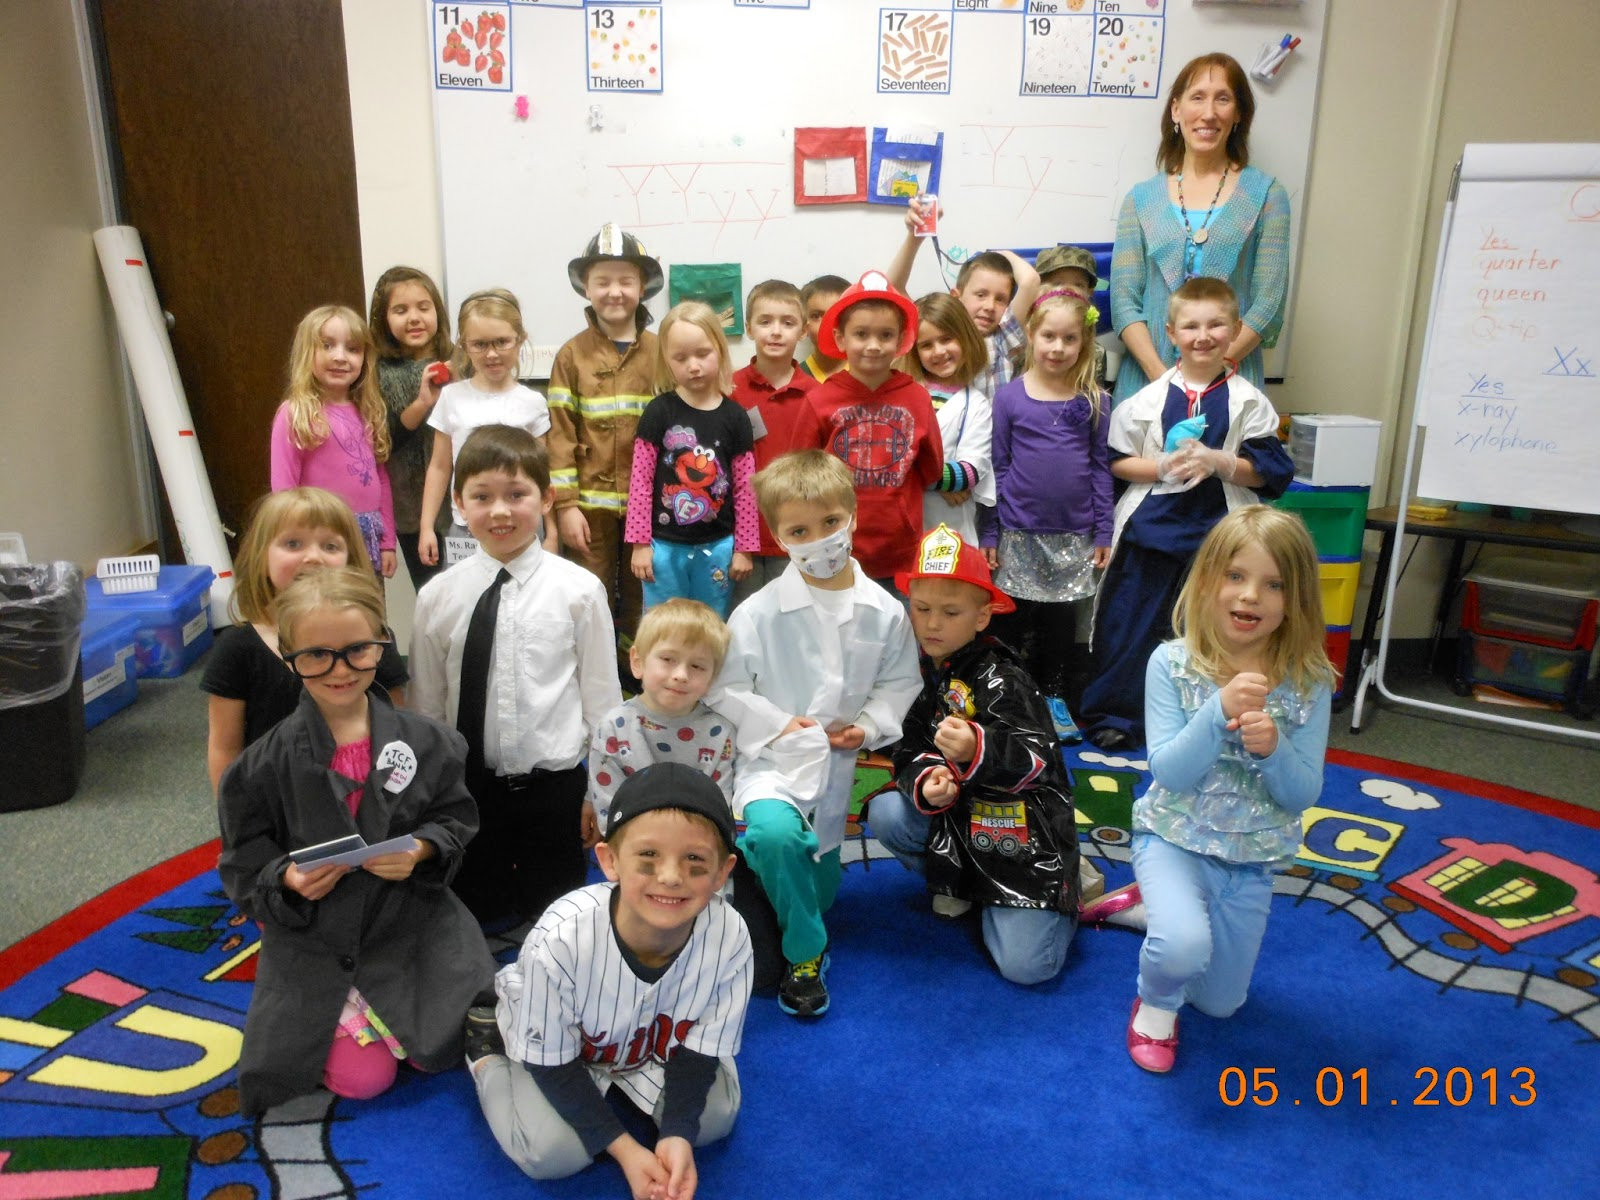 Ms Tacke S Kindergarten Blog Career Day